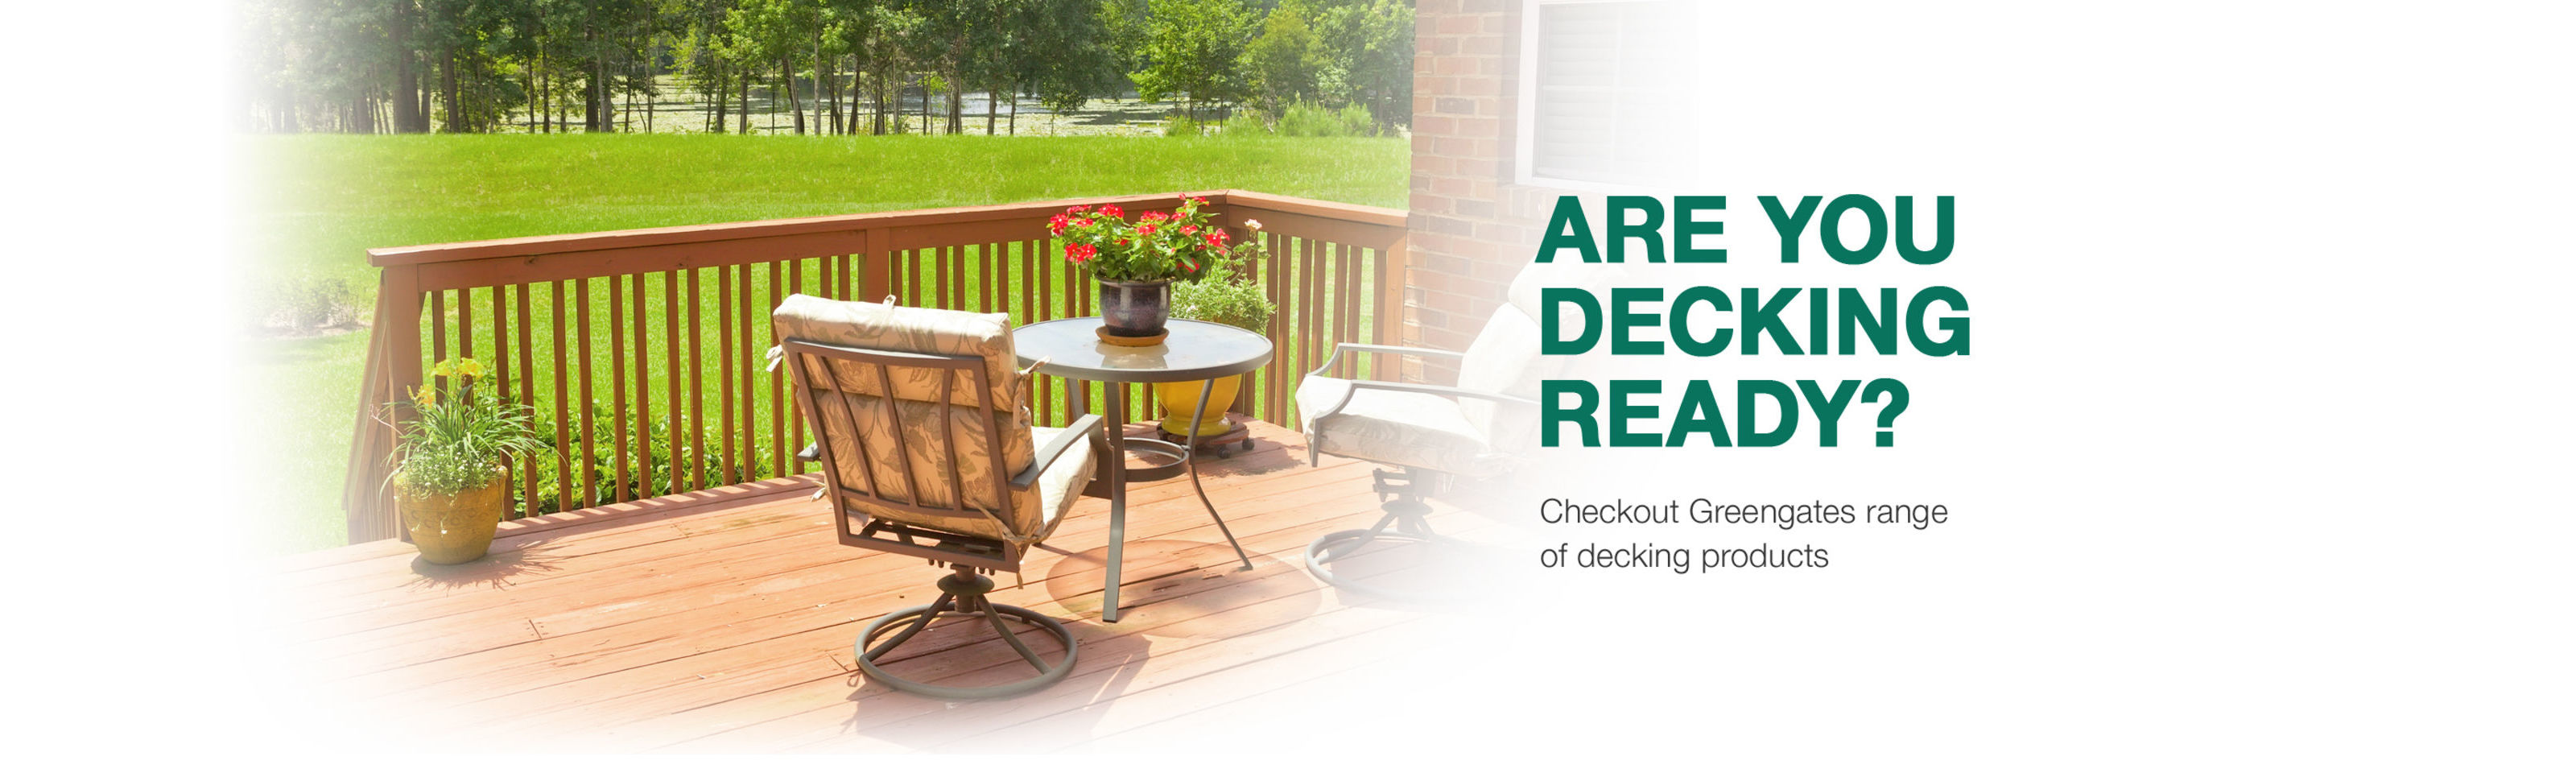 Are you Decking ready?